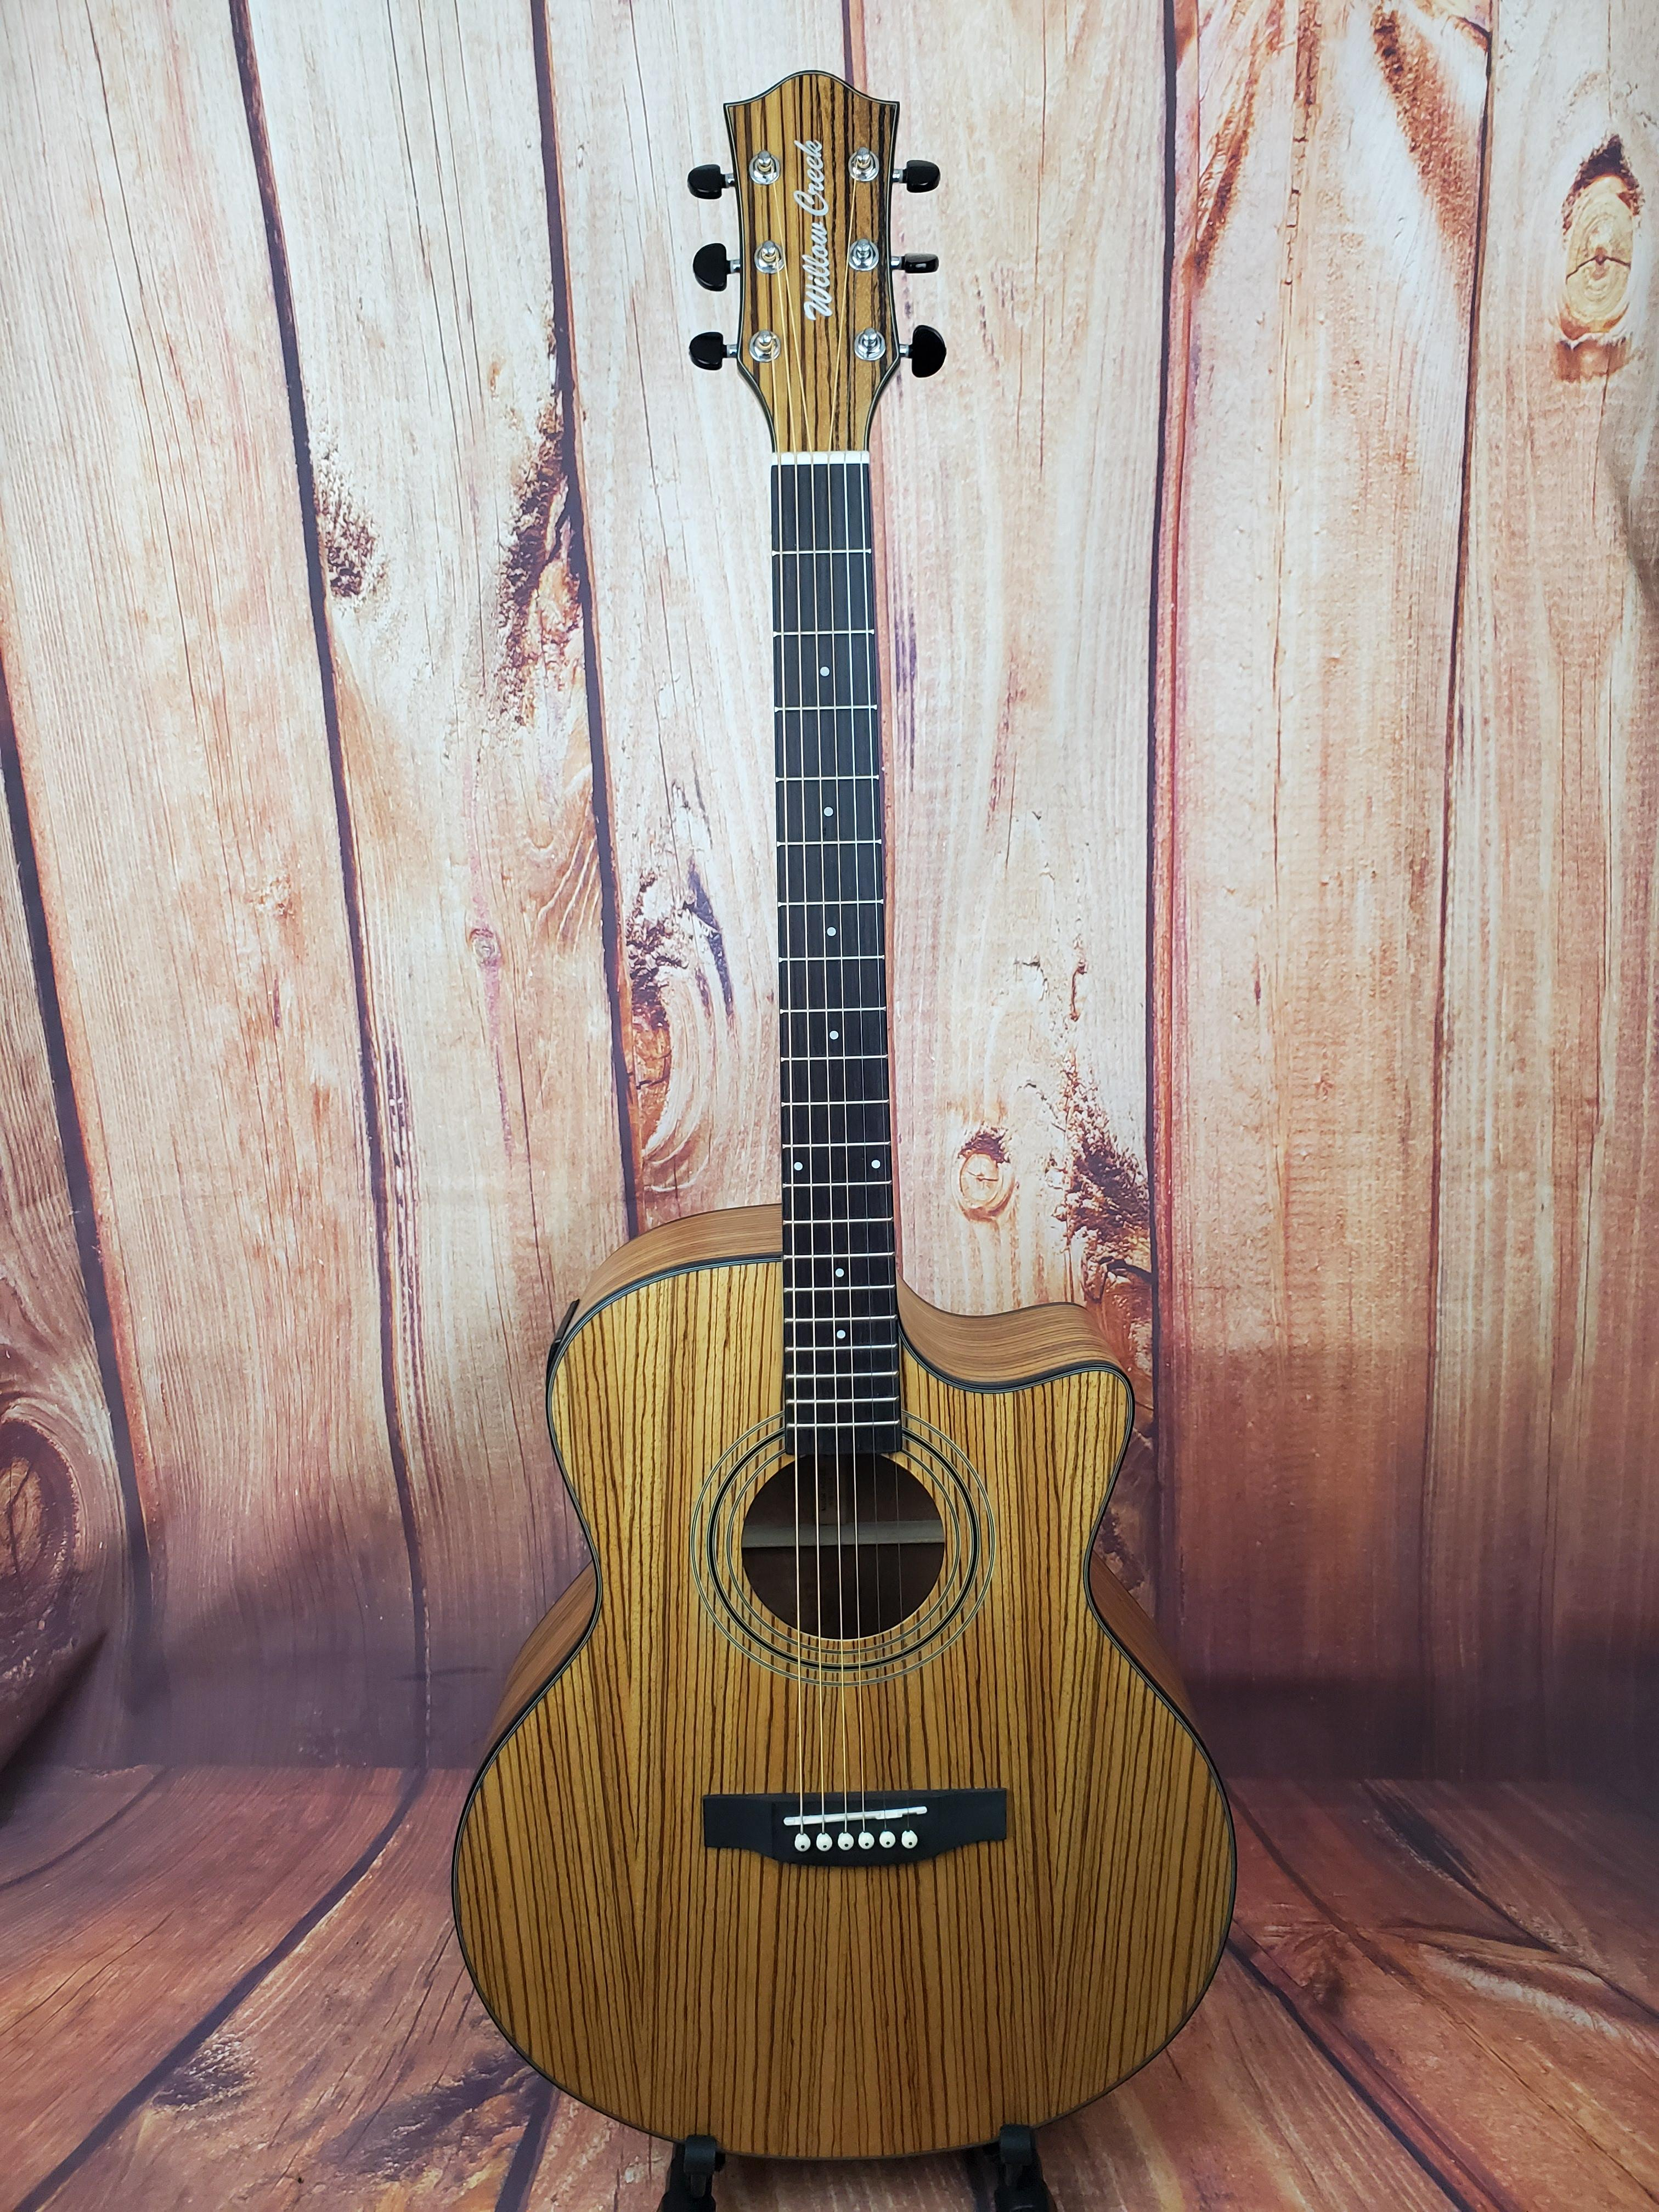 Willow Creek AGZZCE Zebrawood Acoustic-Electric Guitar